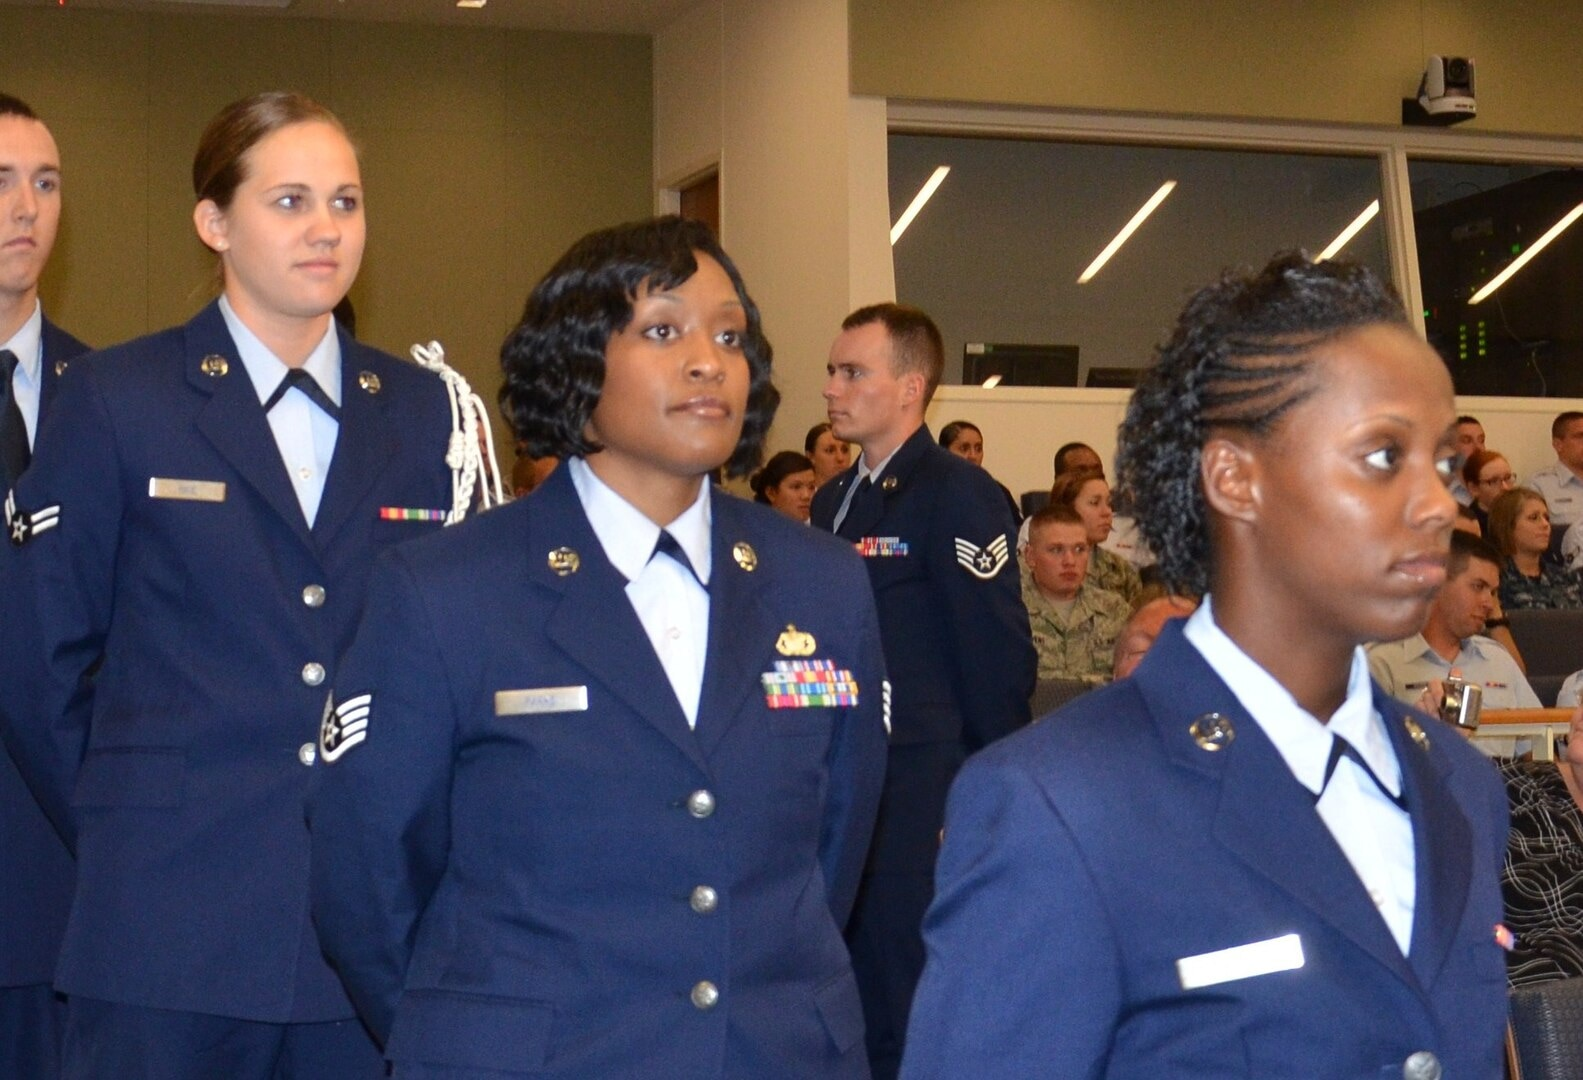 Medical Education and Training Campus Air Force students at graduation ceremony, prior to the COVID-19 pandemic.